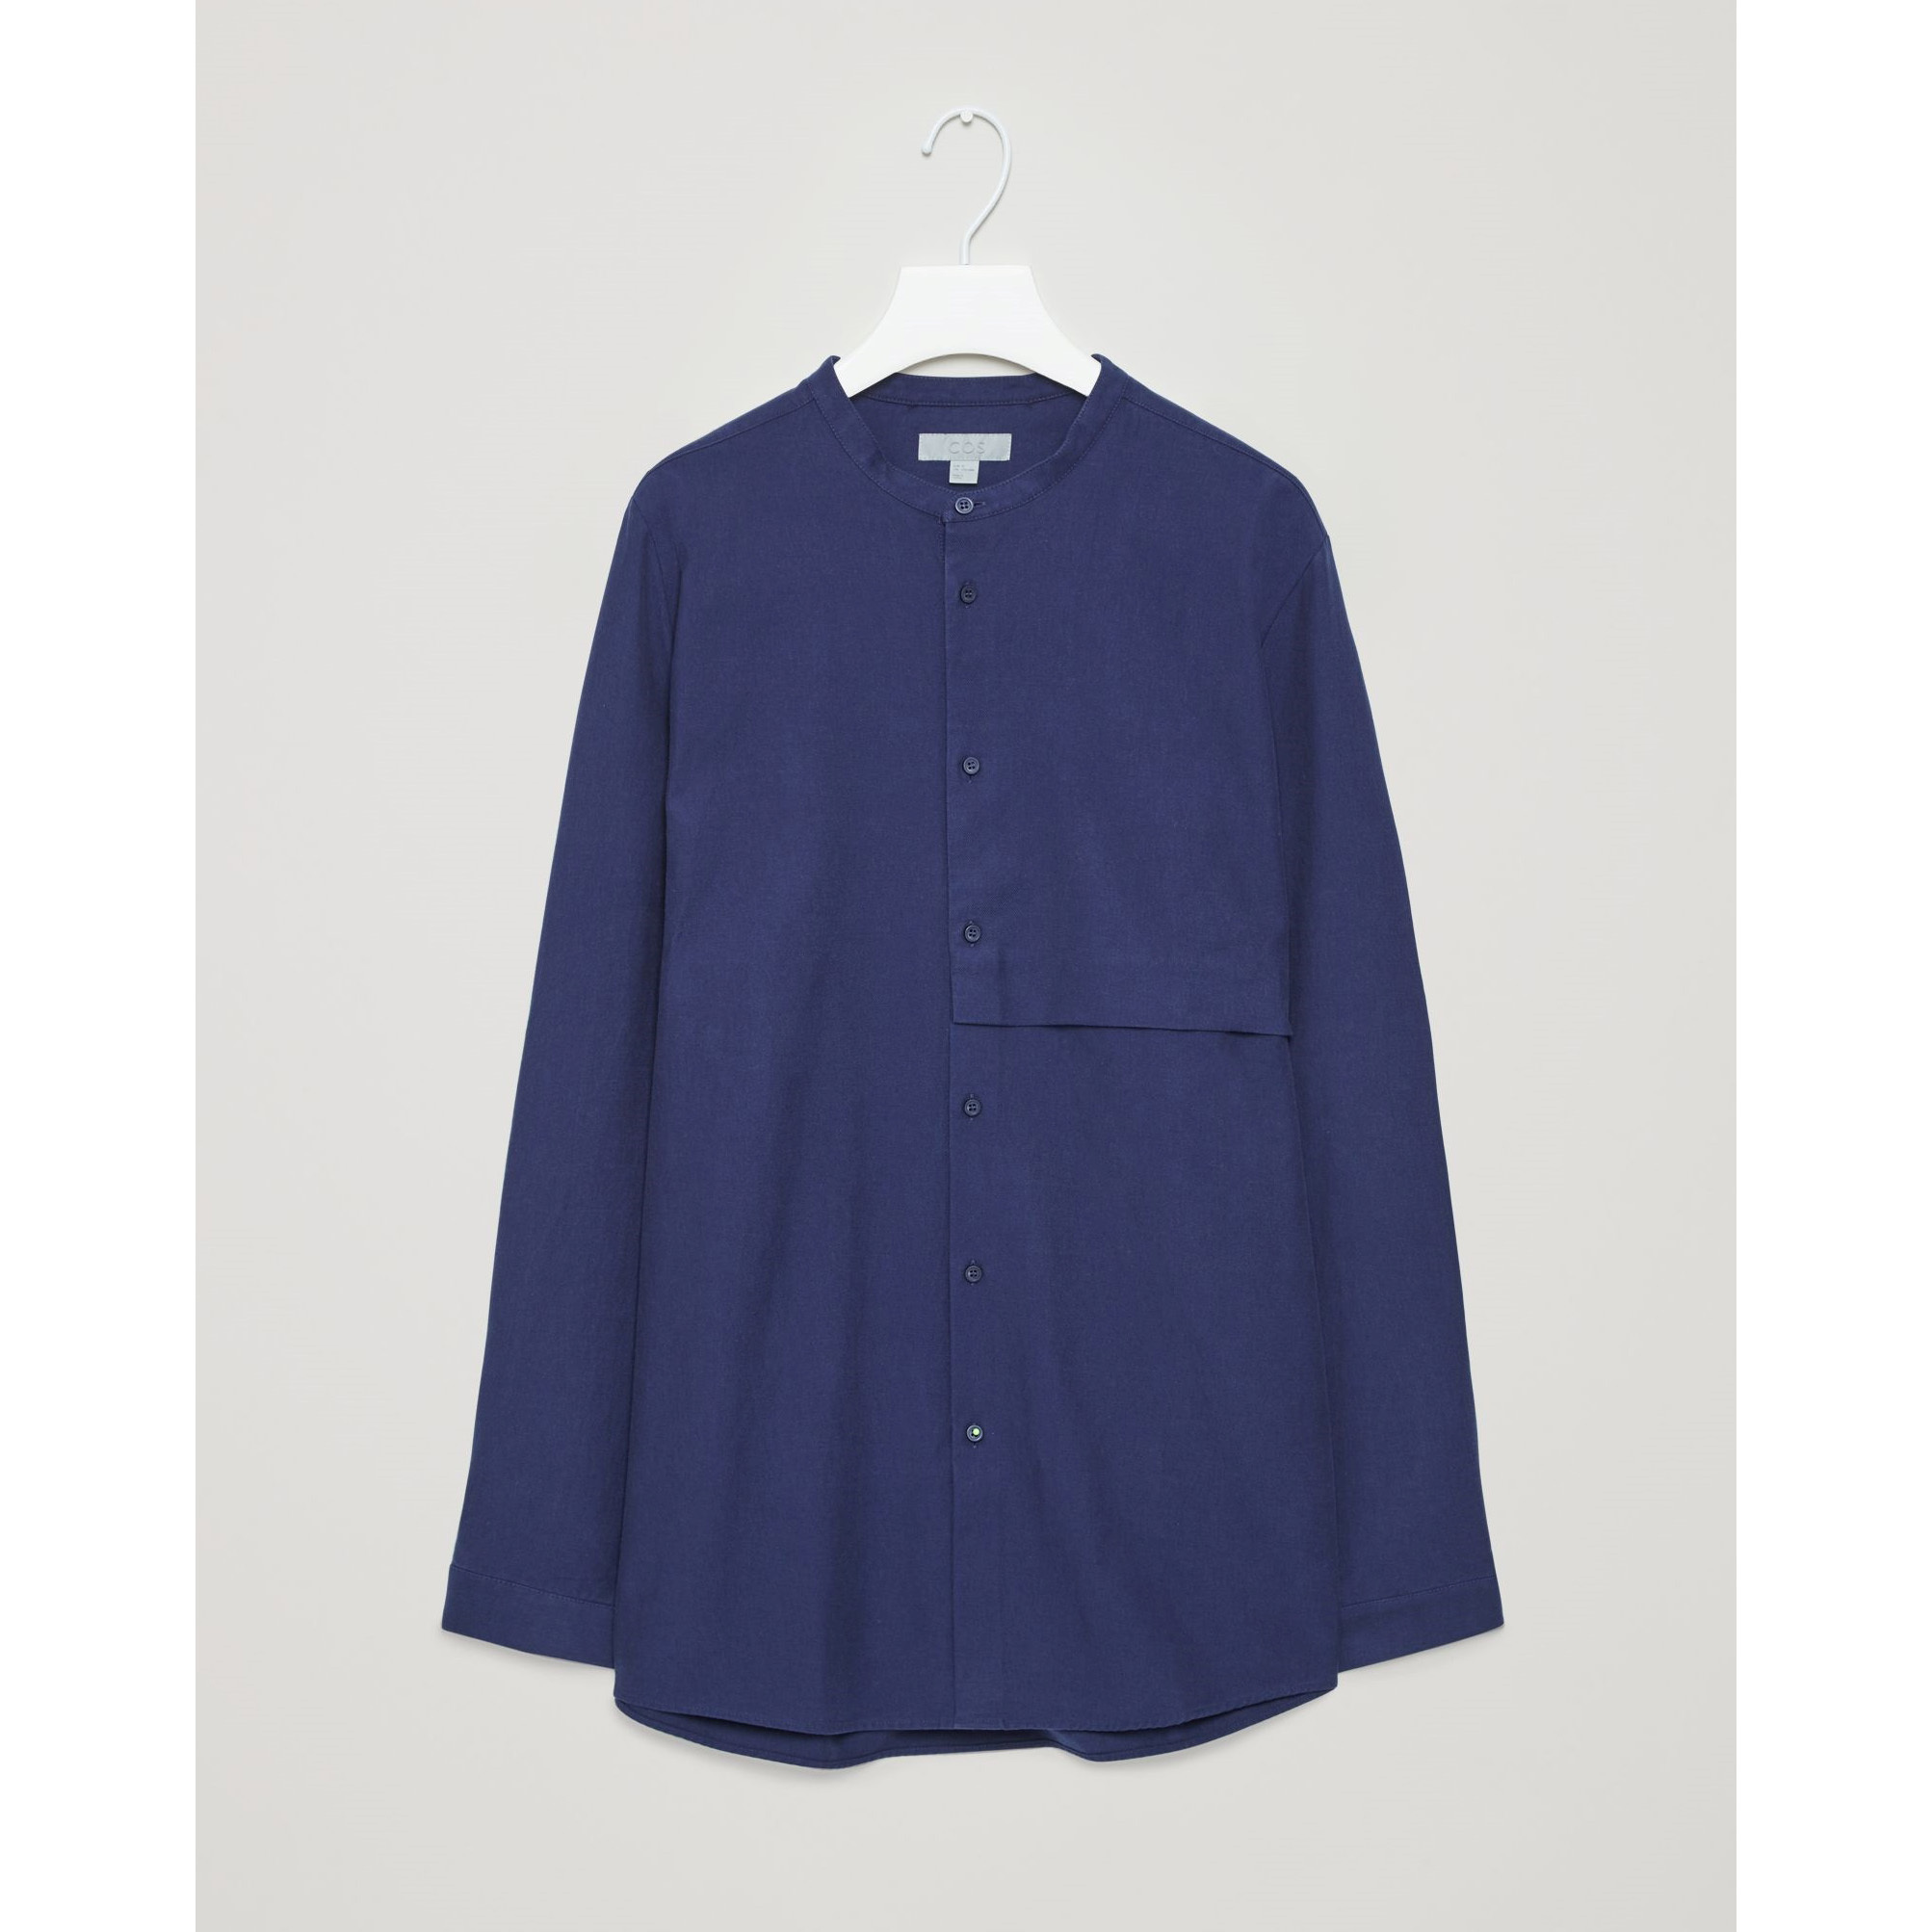 COS☆GRANDAD-COLLAR SHIRT WITH HIDDEN POCKET / navy